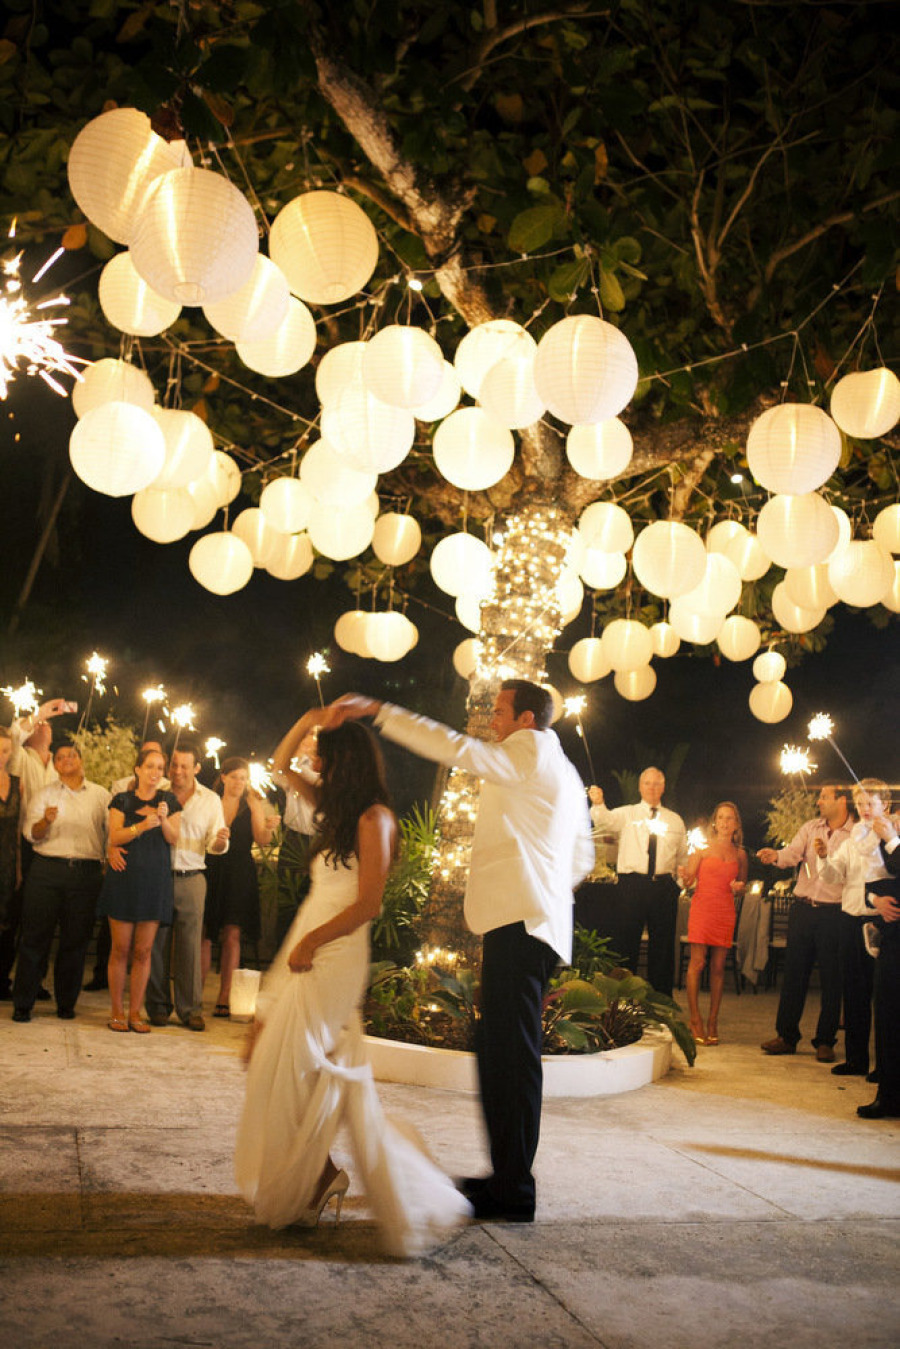 outdoor wedding,10 outdoor wedding twinkle light ideas,wedding twinkle lights,outdoor wedding twinkle lights,wedding reception decor light